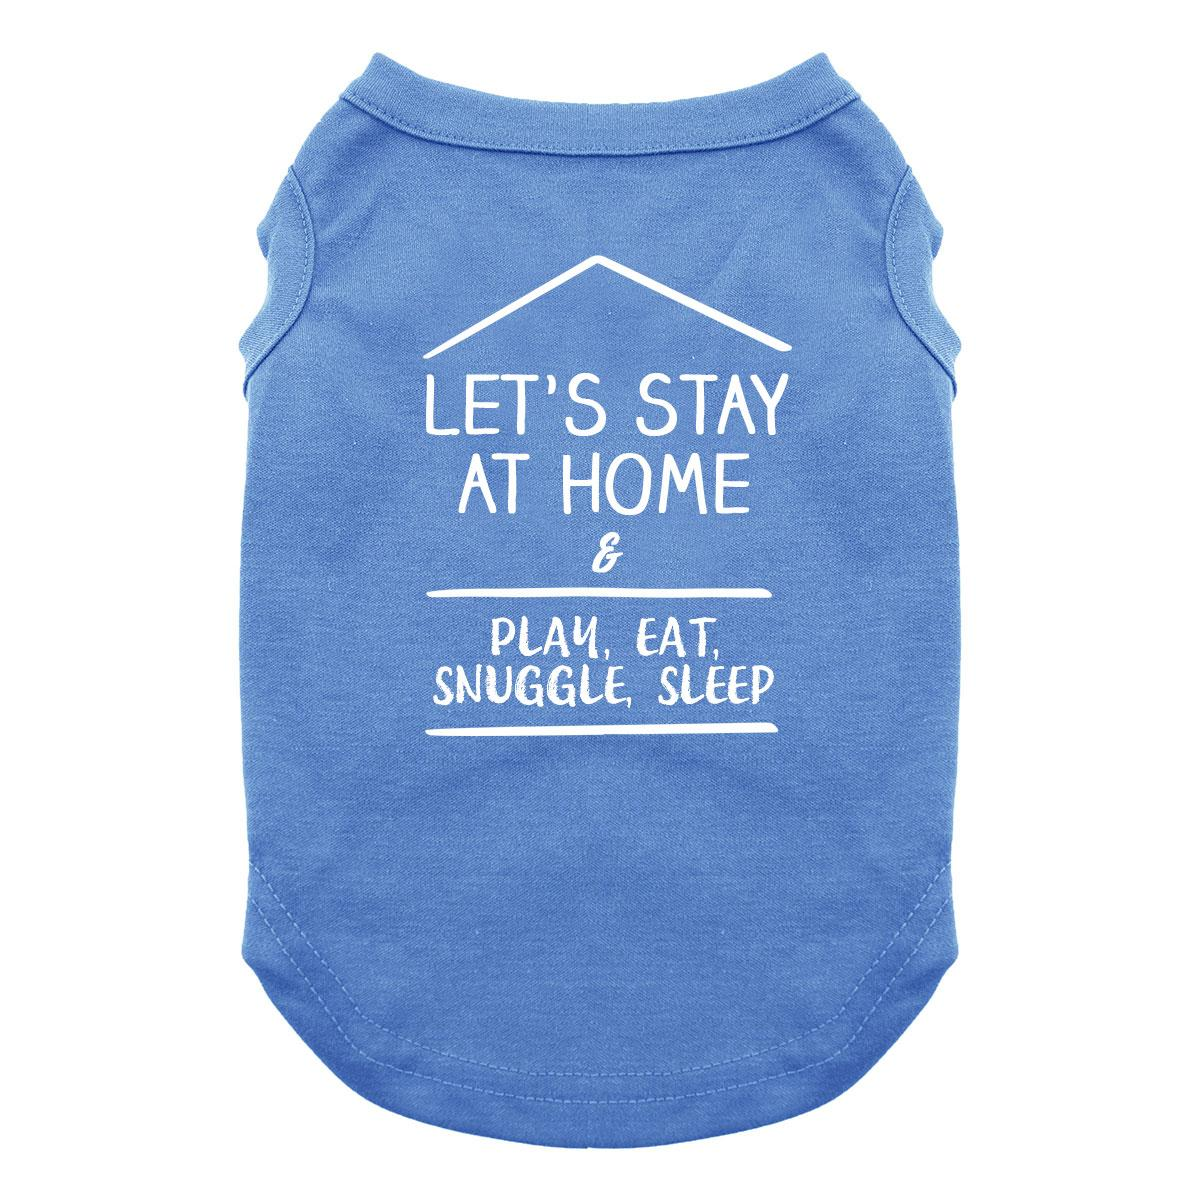 Let's Stay at Home Dog Shirt - Blue